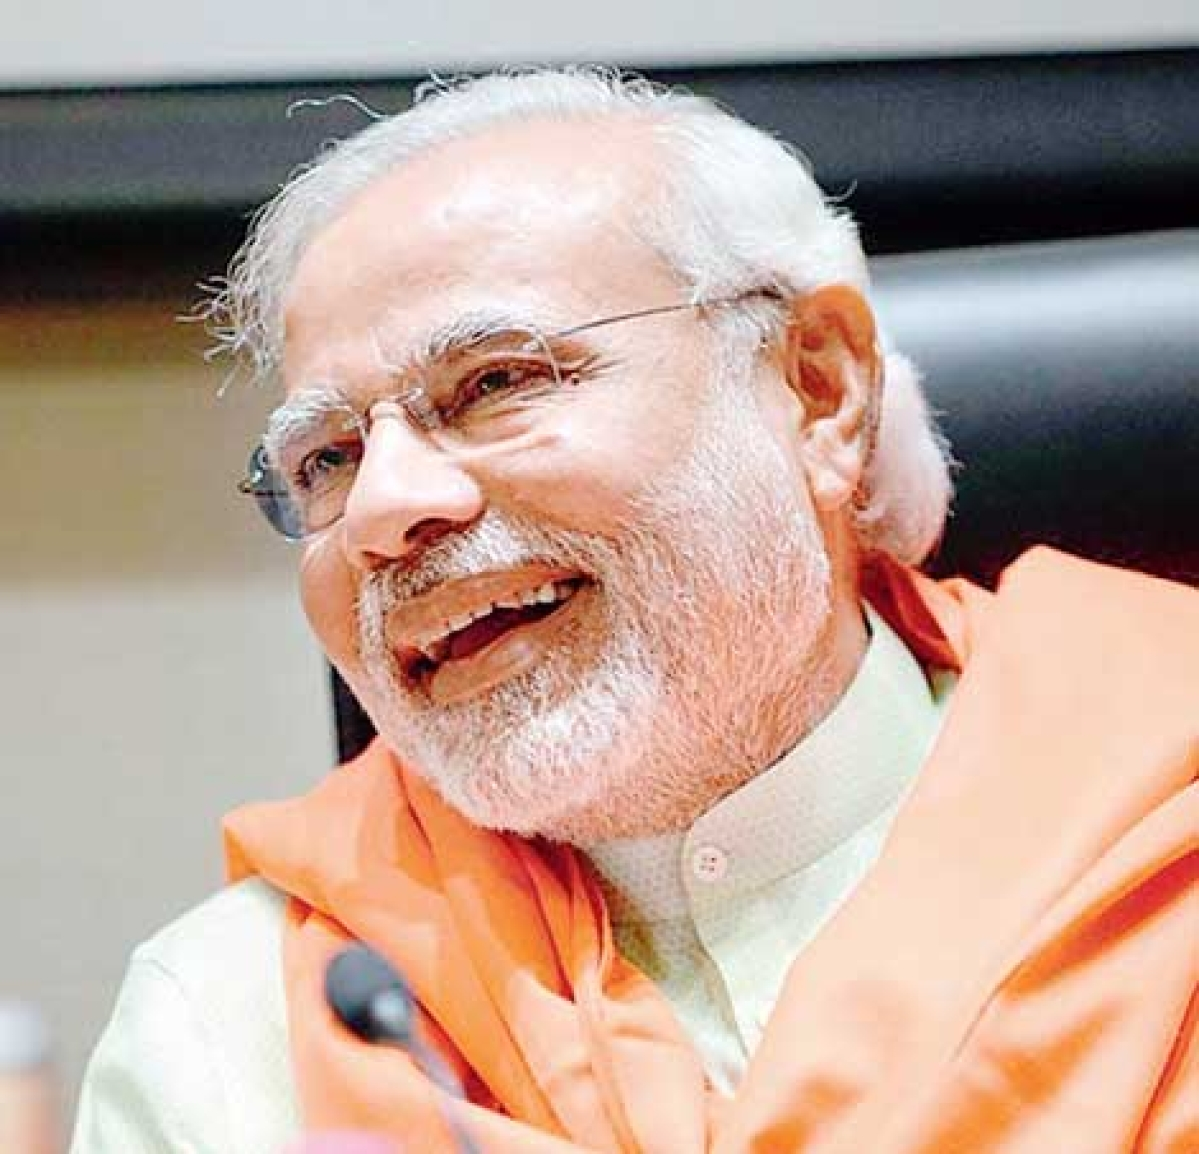 SC reprimands IAS officer for offending references to Modi